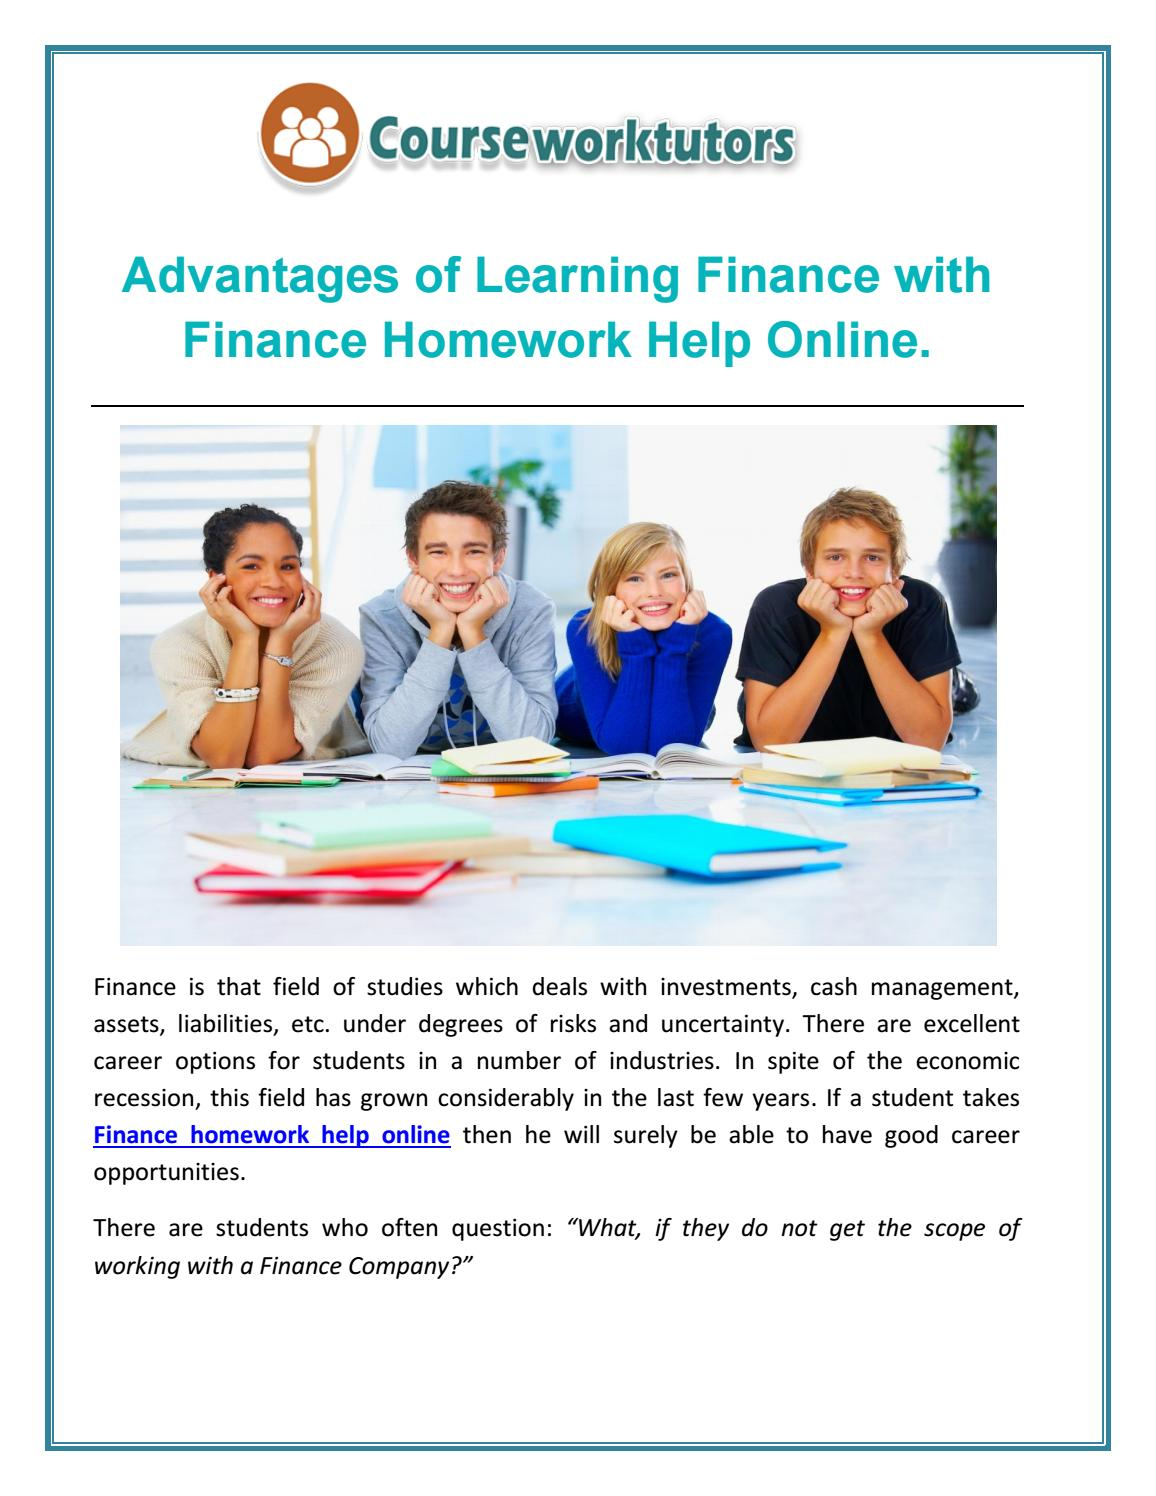 advantages of learning finance finance homework help online  advantages of learning finance finance homework help online by courseworktutors issuu